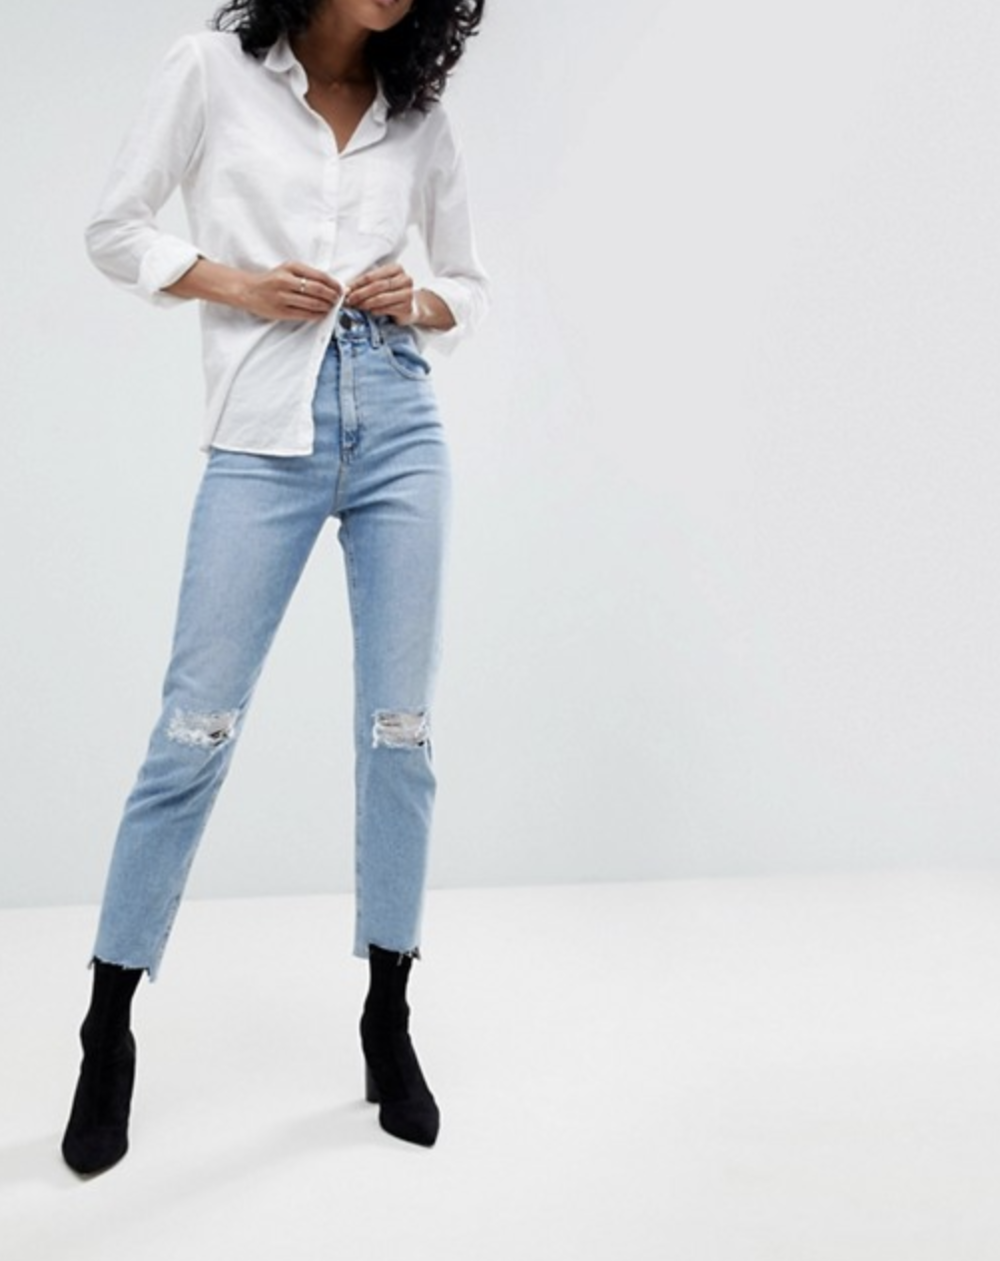 ASOS FARLEIGH High Waist Slim Mom Jeans In Zaliki Light Vintage Wash With Busted Knee And Rip & Repair Detail